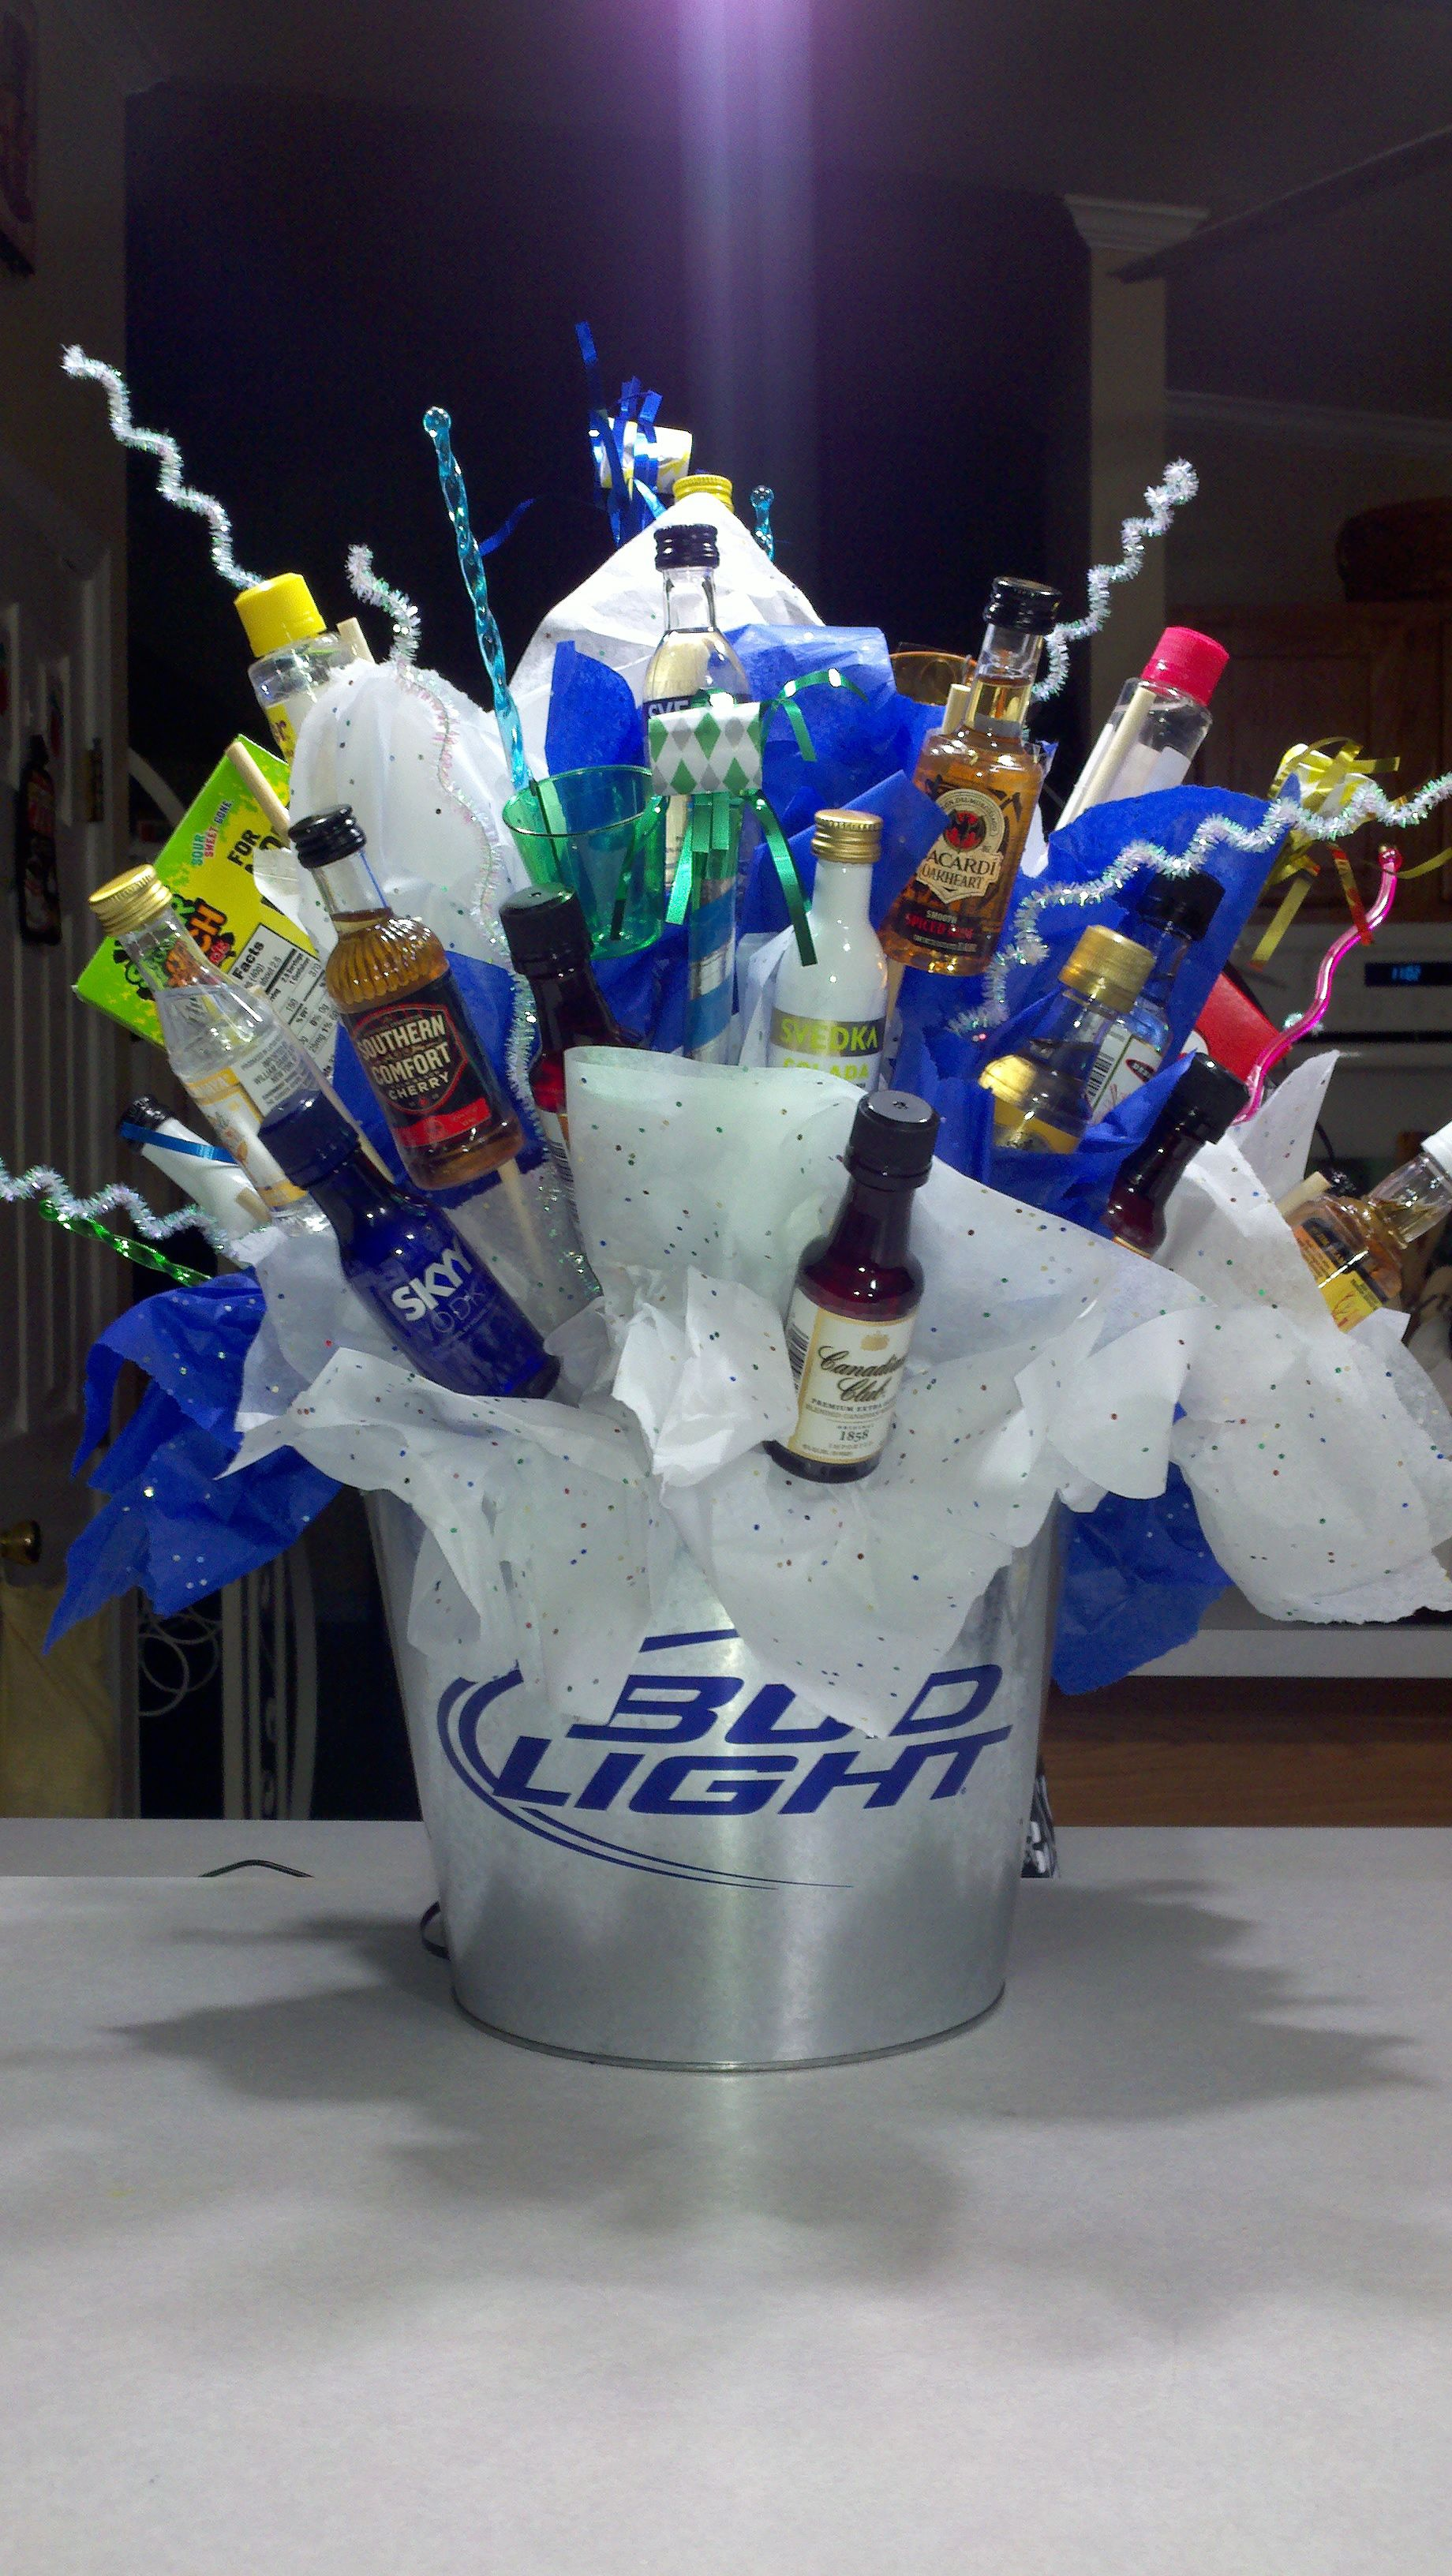 Shot Bottle Bouquet I Made For My Sons 21st Birthday